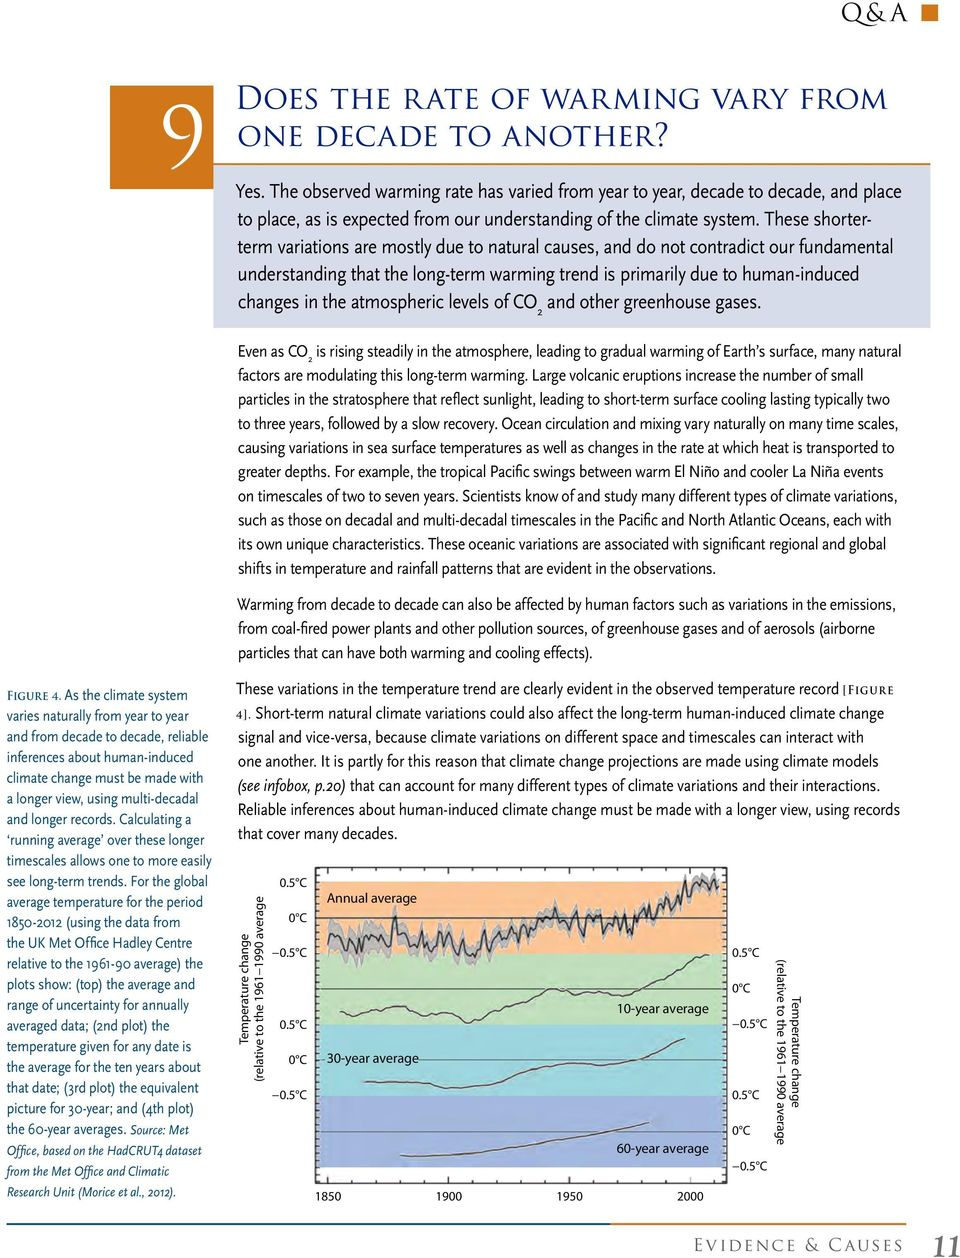 These shorterterm variations are mostly due to natural causes, and do not contradict our fundamental understanding that the long-term warming trend is primarily due to human-induced changes in the